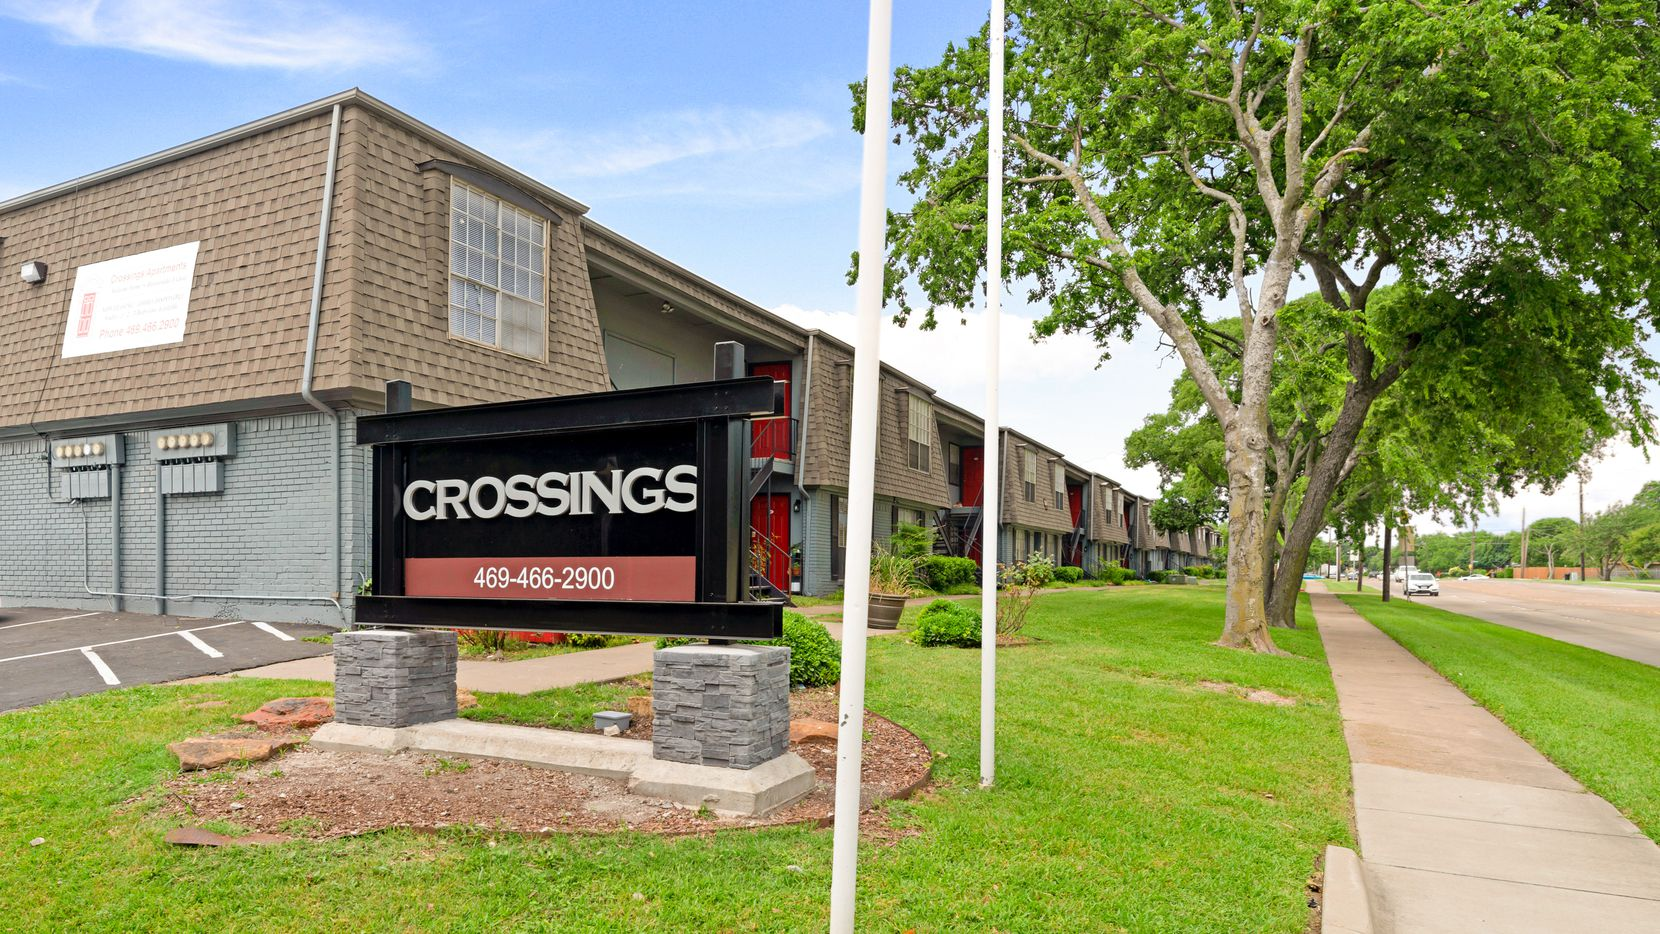 The Crossings Apartments in Garland were purchased by an investor.